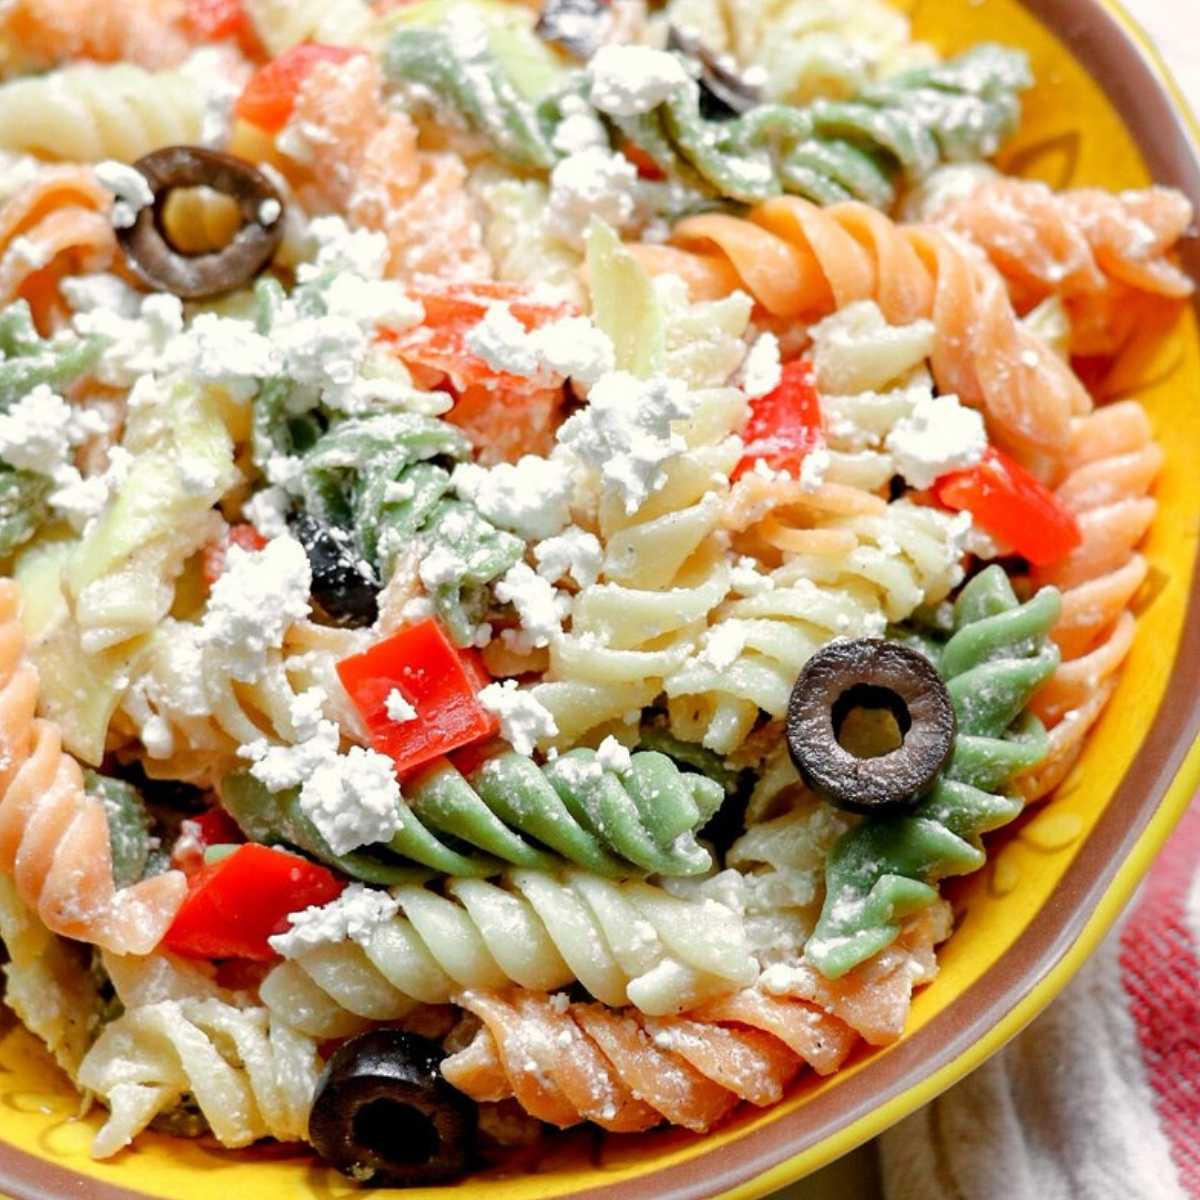 7. Tri-Colored Pasta with Feta Cheese